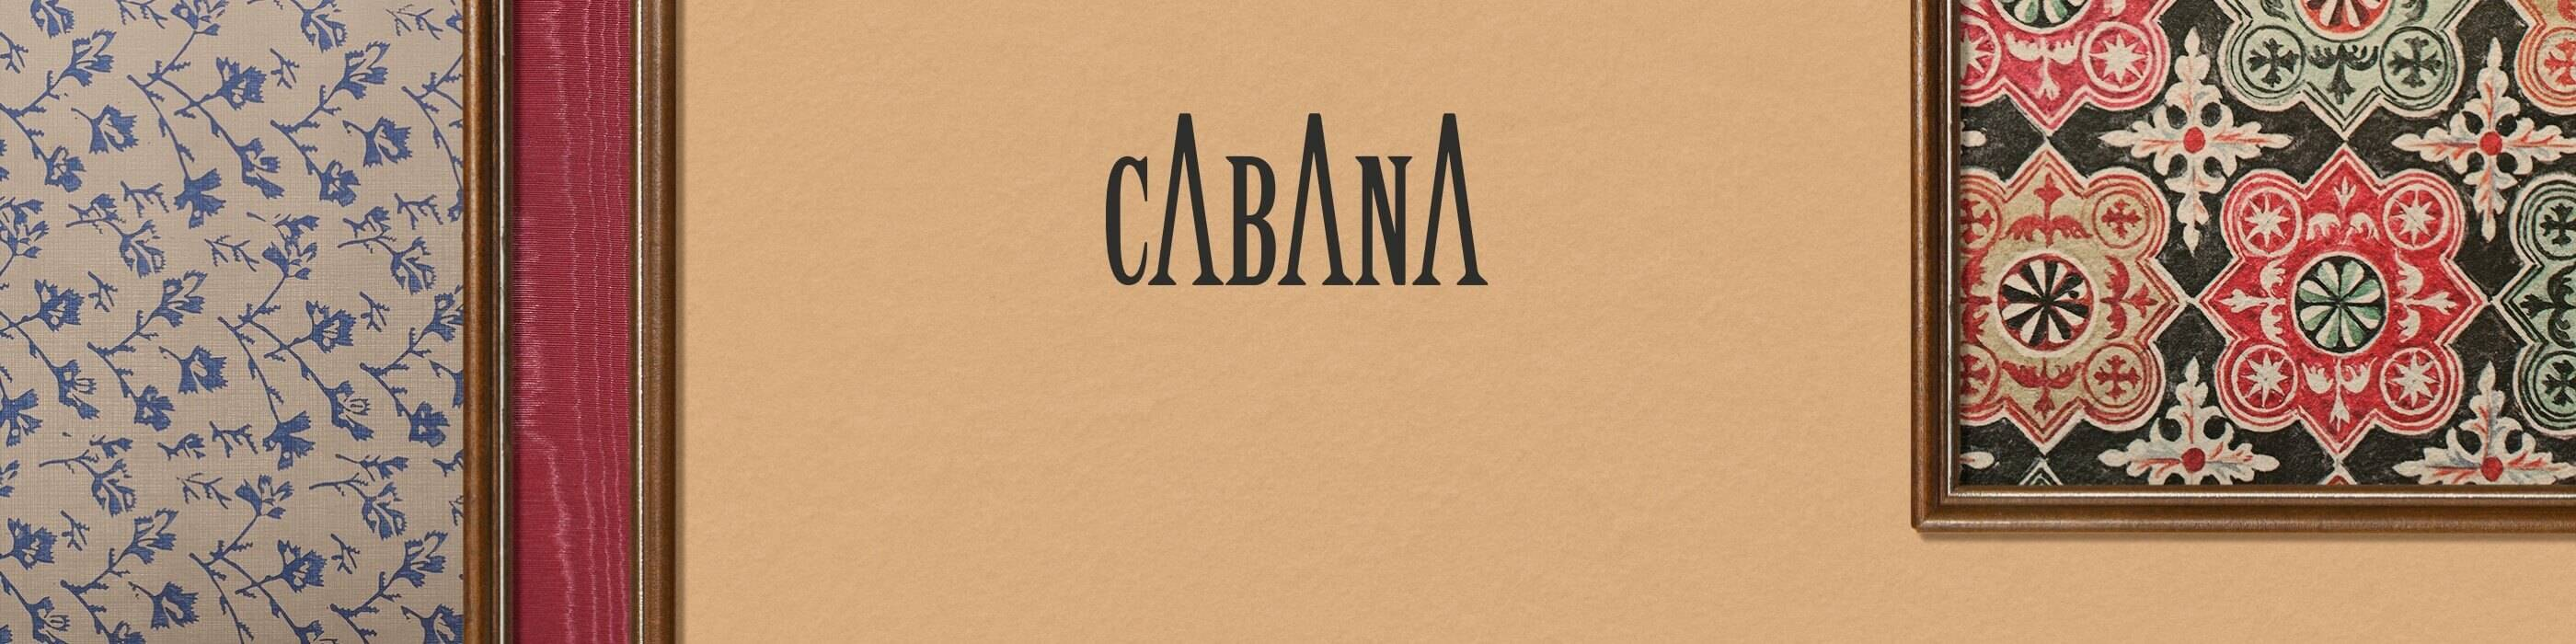 Cabana for Paperless Post - online